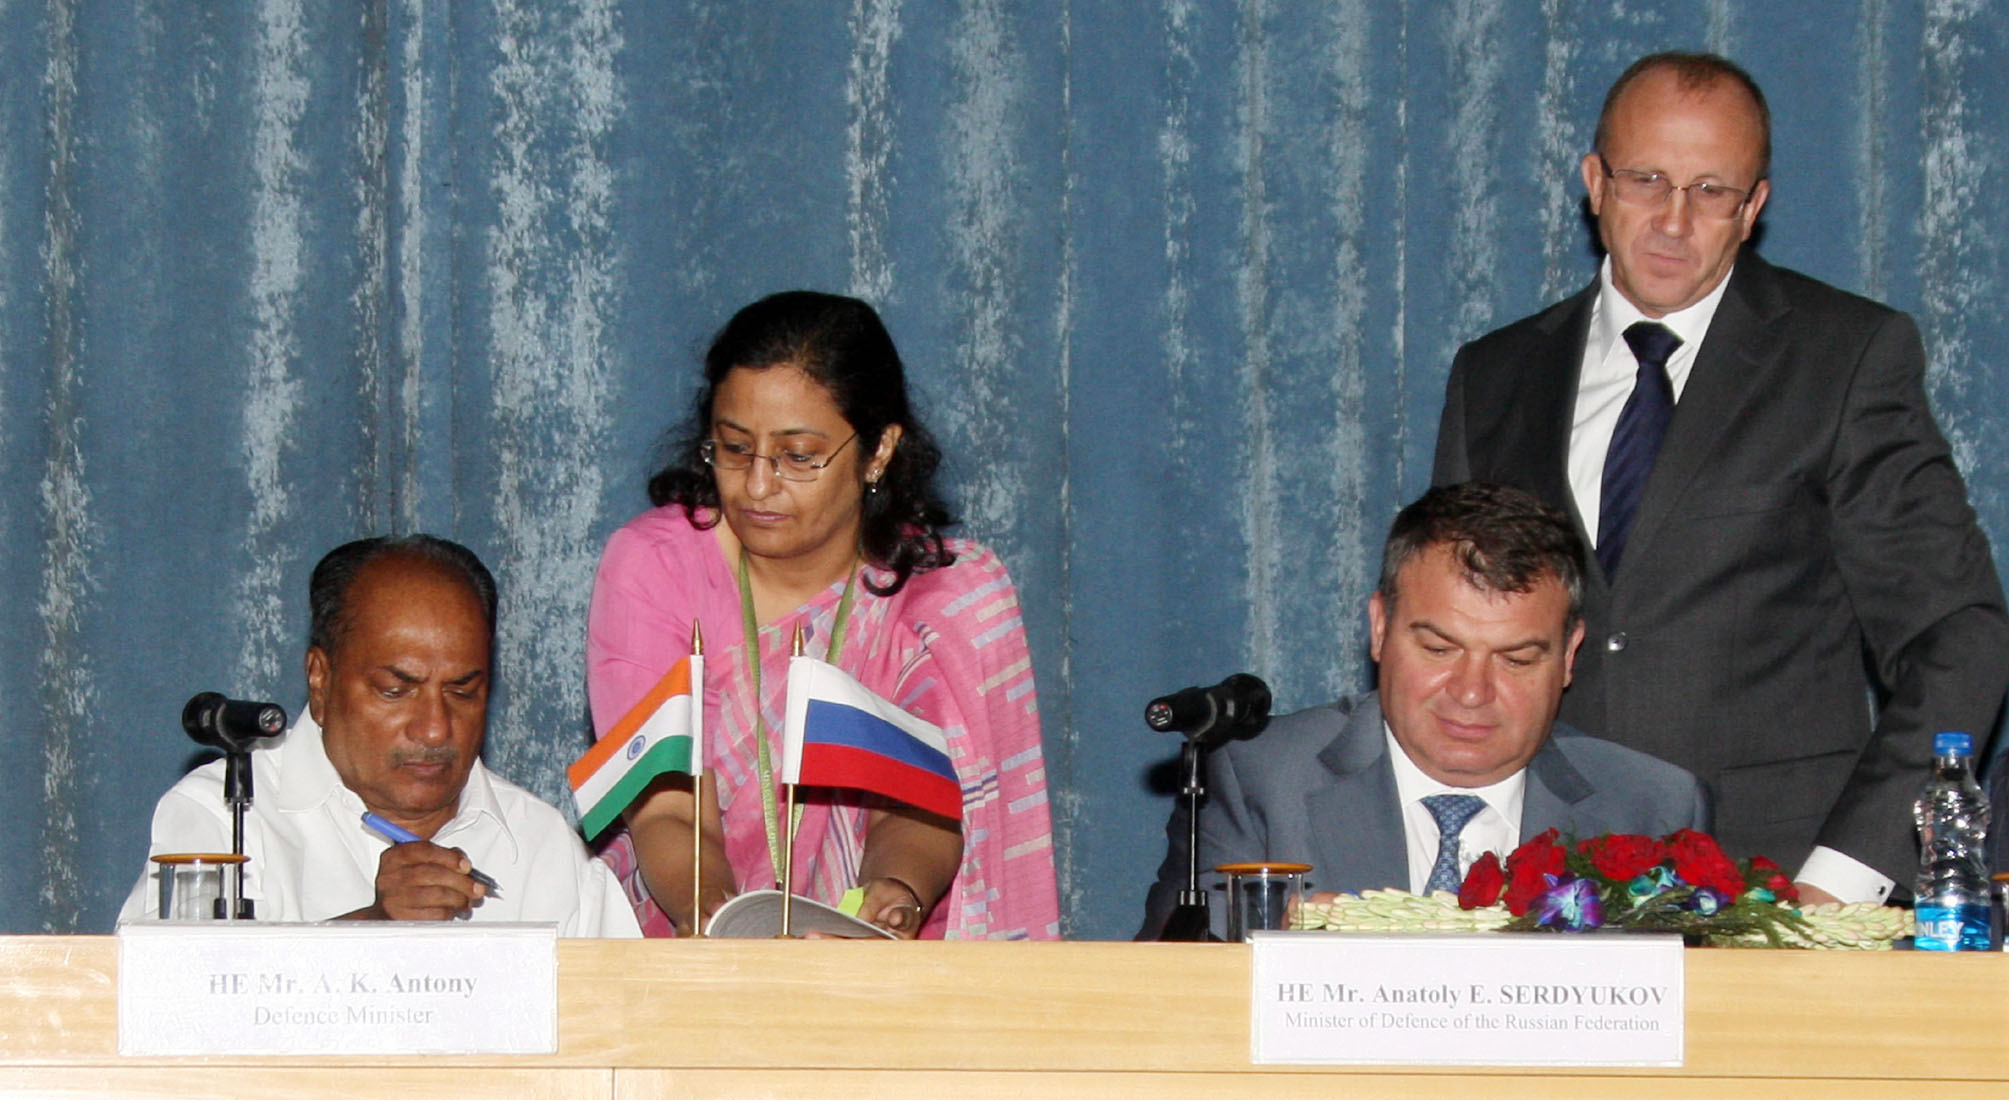 File:A  K  Antony and the Russian Defence Minister, Mr  A E